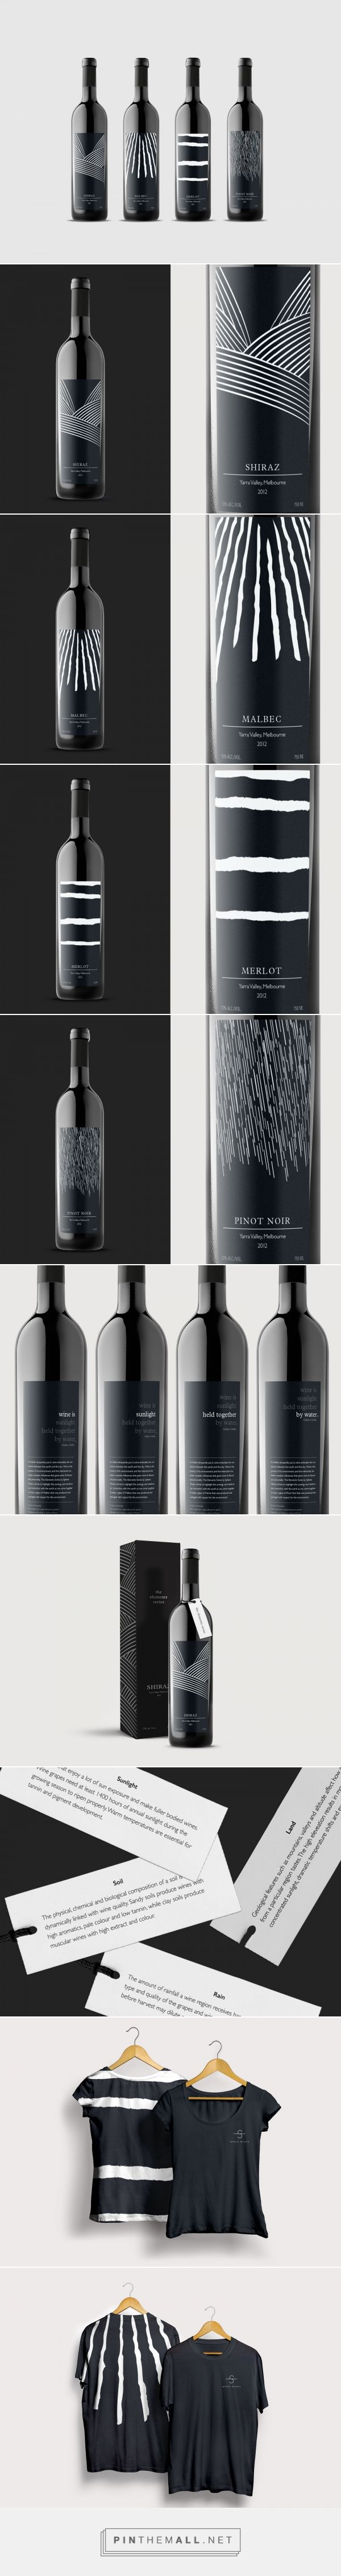 Land, Sunlight, Soil and Rain on The Elements Series wine label - student concept design by Dana Mevorach - http://www.packagingoftheworld.com/2017/04/the-elements-series-student-project.html